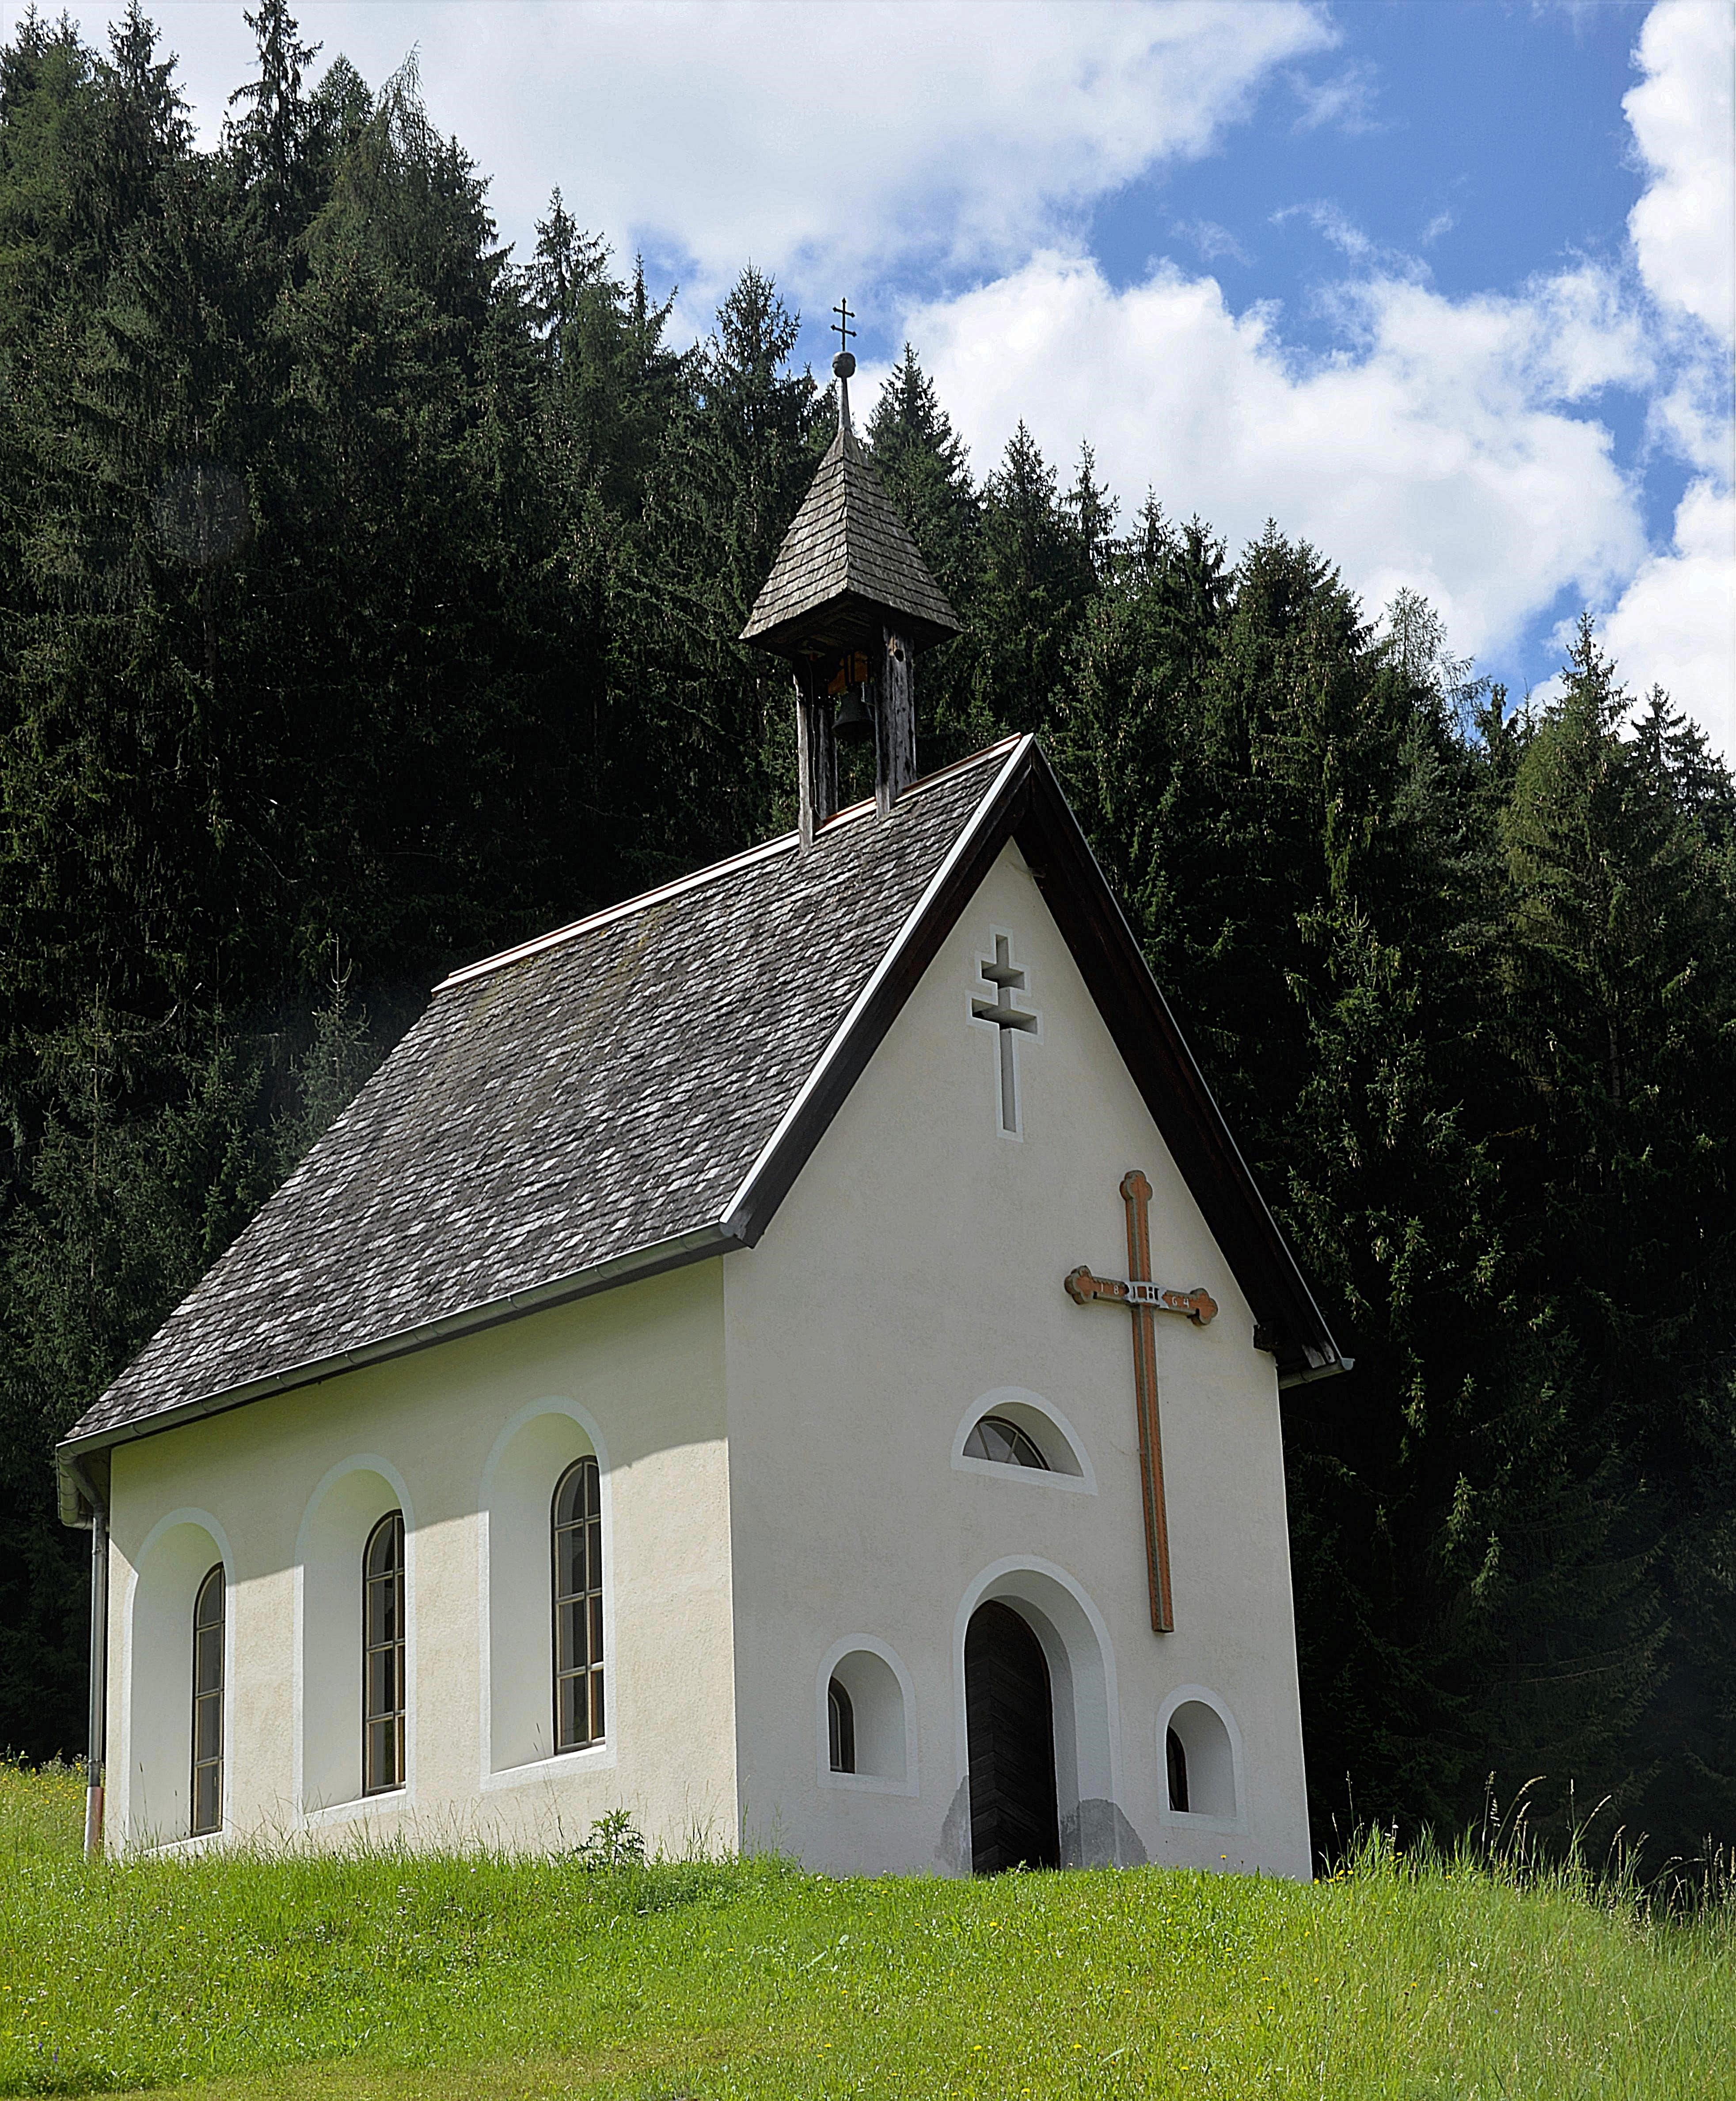 White And Grey Church Near Trees Under Clear Blue Sky